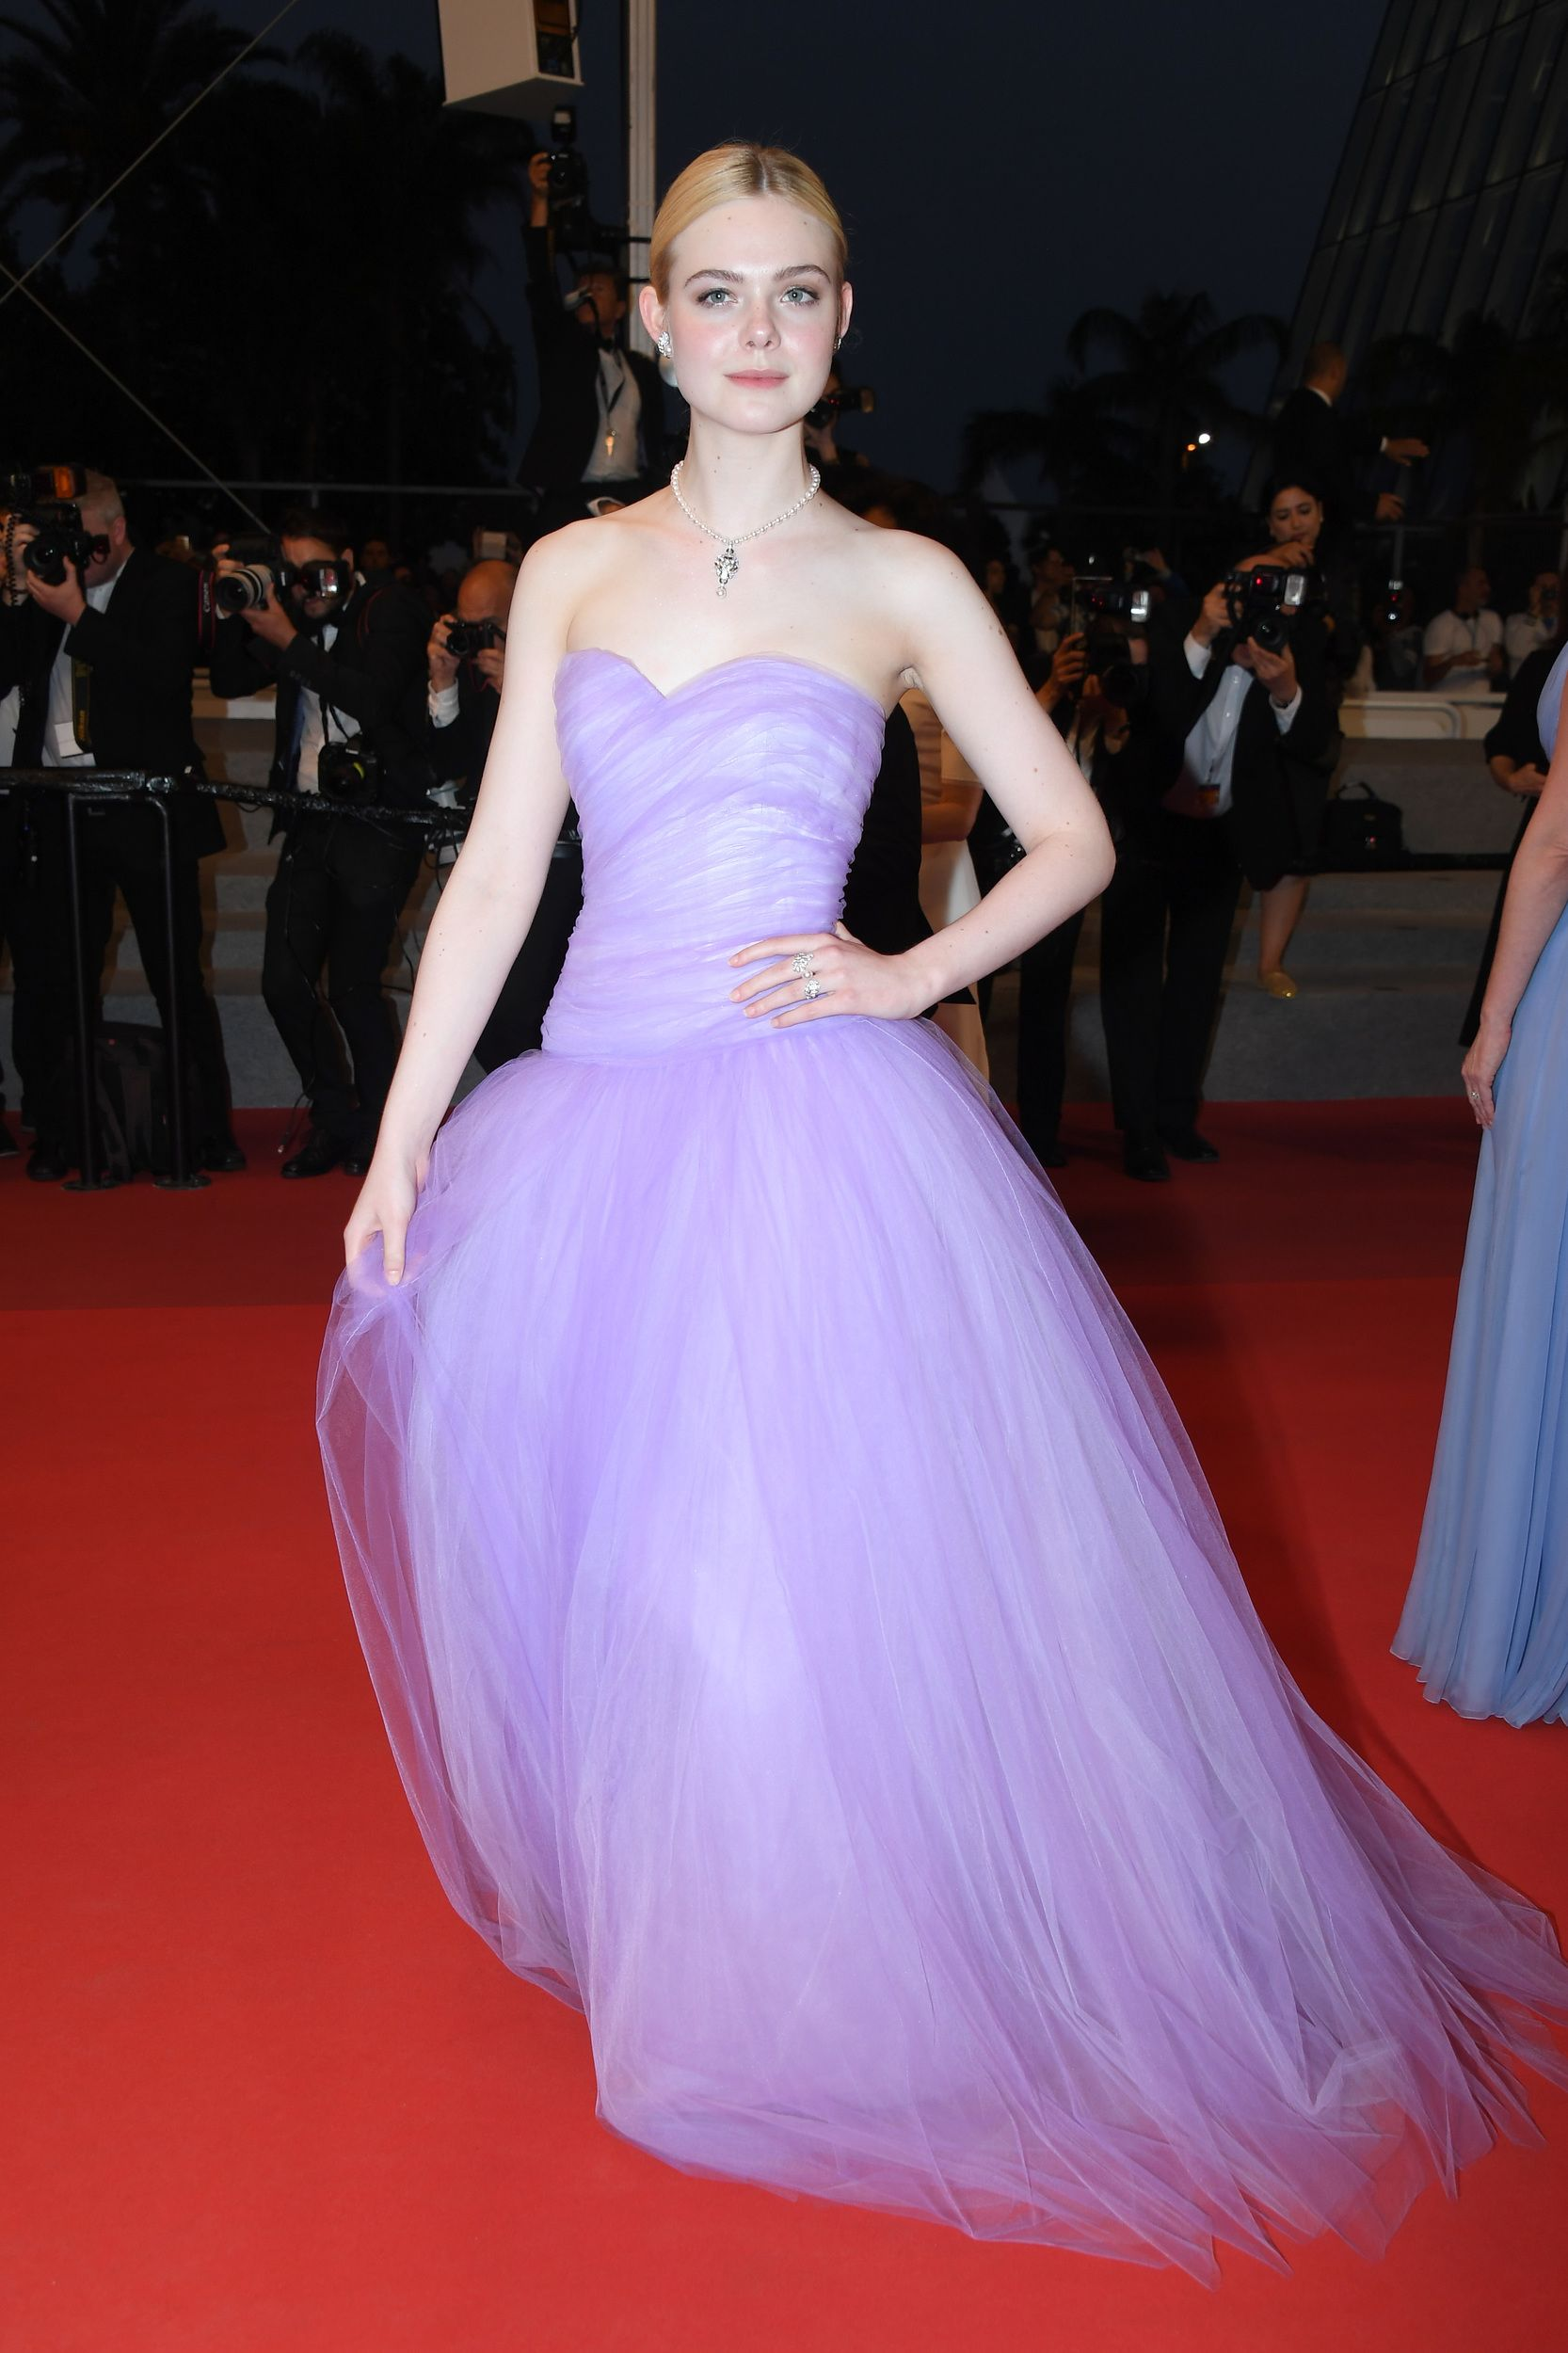 CANNES, FRANCE - MAY 24:  Elle Fanning departs  the 'The Beguiled' screening during the 70th annual Cannes Film Festival at Palais des Festivals on May 24, 2017 in Cannes, France.  (Photo by Dominique Charriau/WireImage) via @AOL_Lifestyle Read more: https://www.aol.com/article/entertainment/2017/05/24/izabel-goulart-appears-naked-at-2017-cannes-film-festival/22108063/?a_dgi=aolshare_pinterest#fullscreen